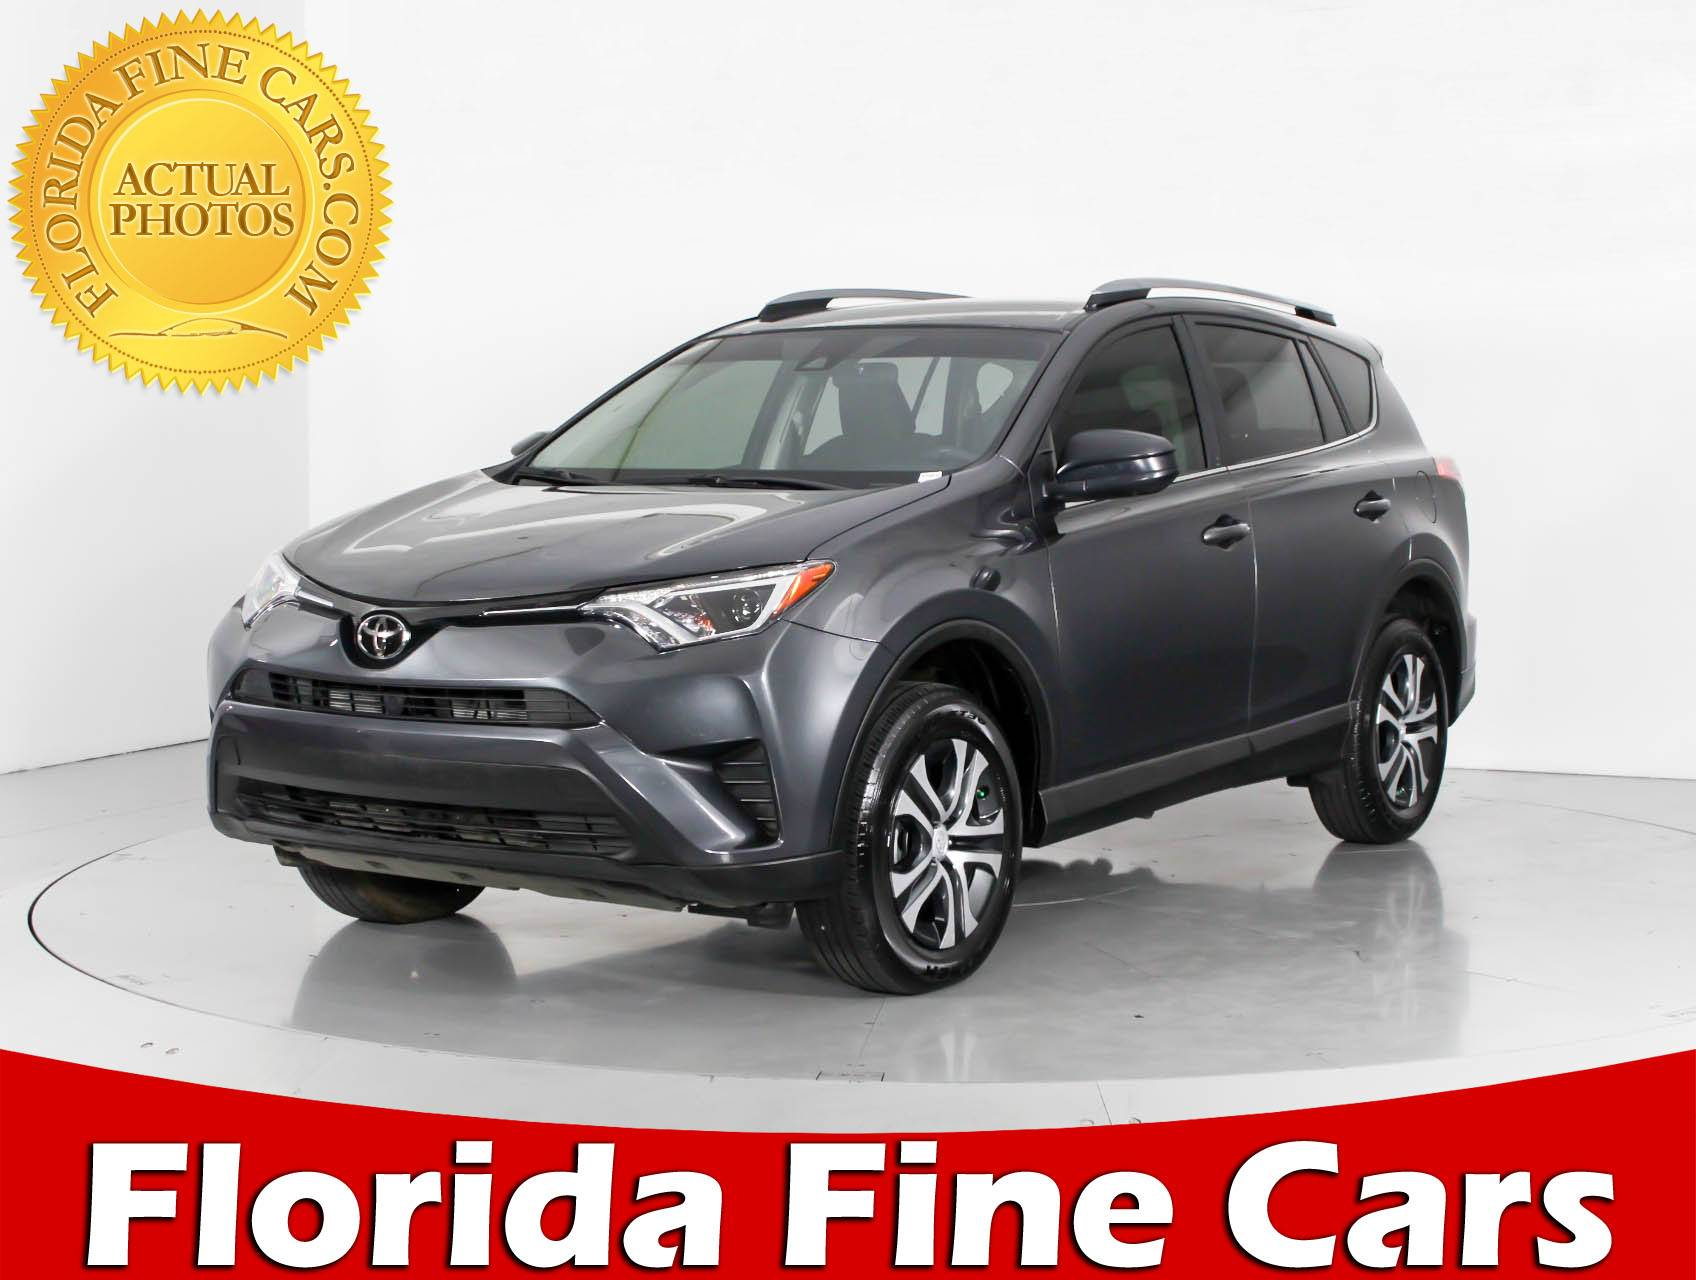 Used 2017 TOYOTA RAV4 LE SUV for sale in WEST PALM FL